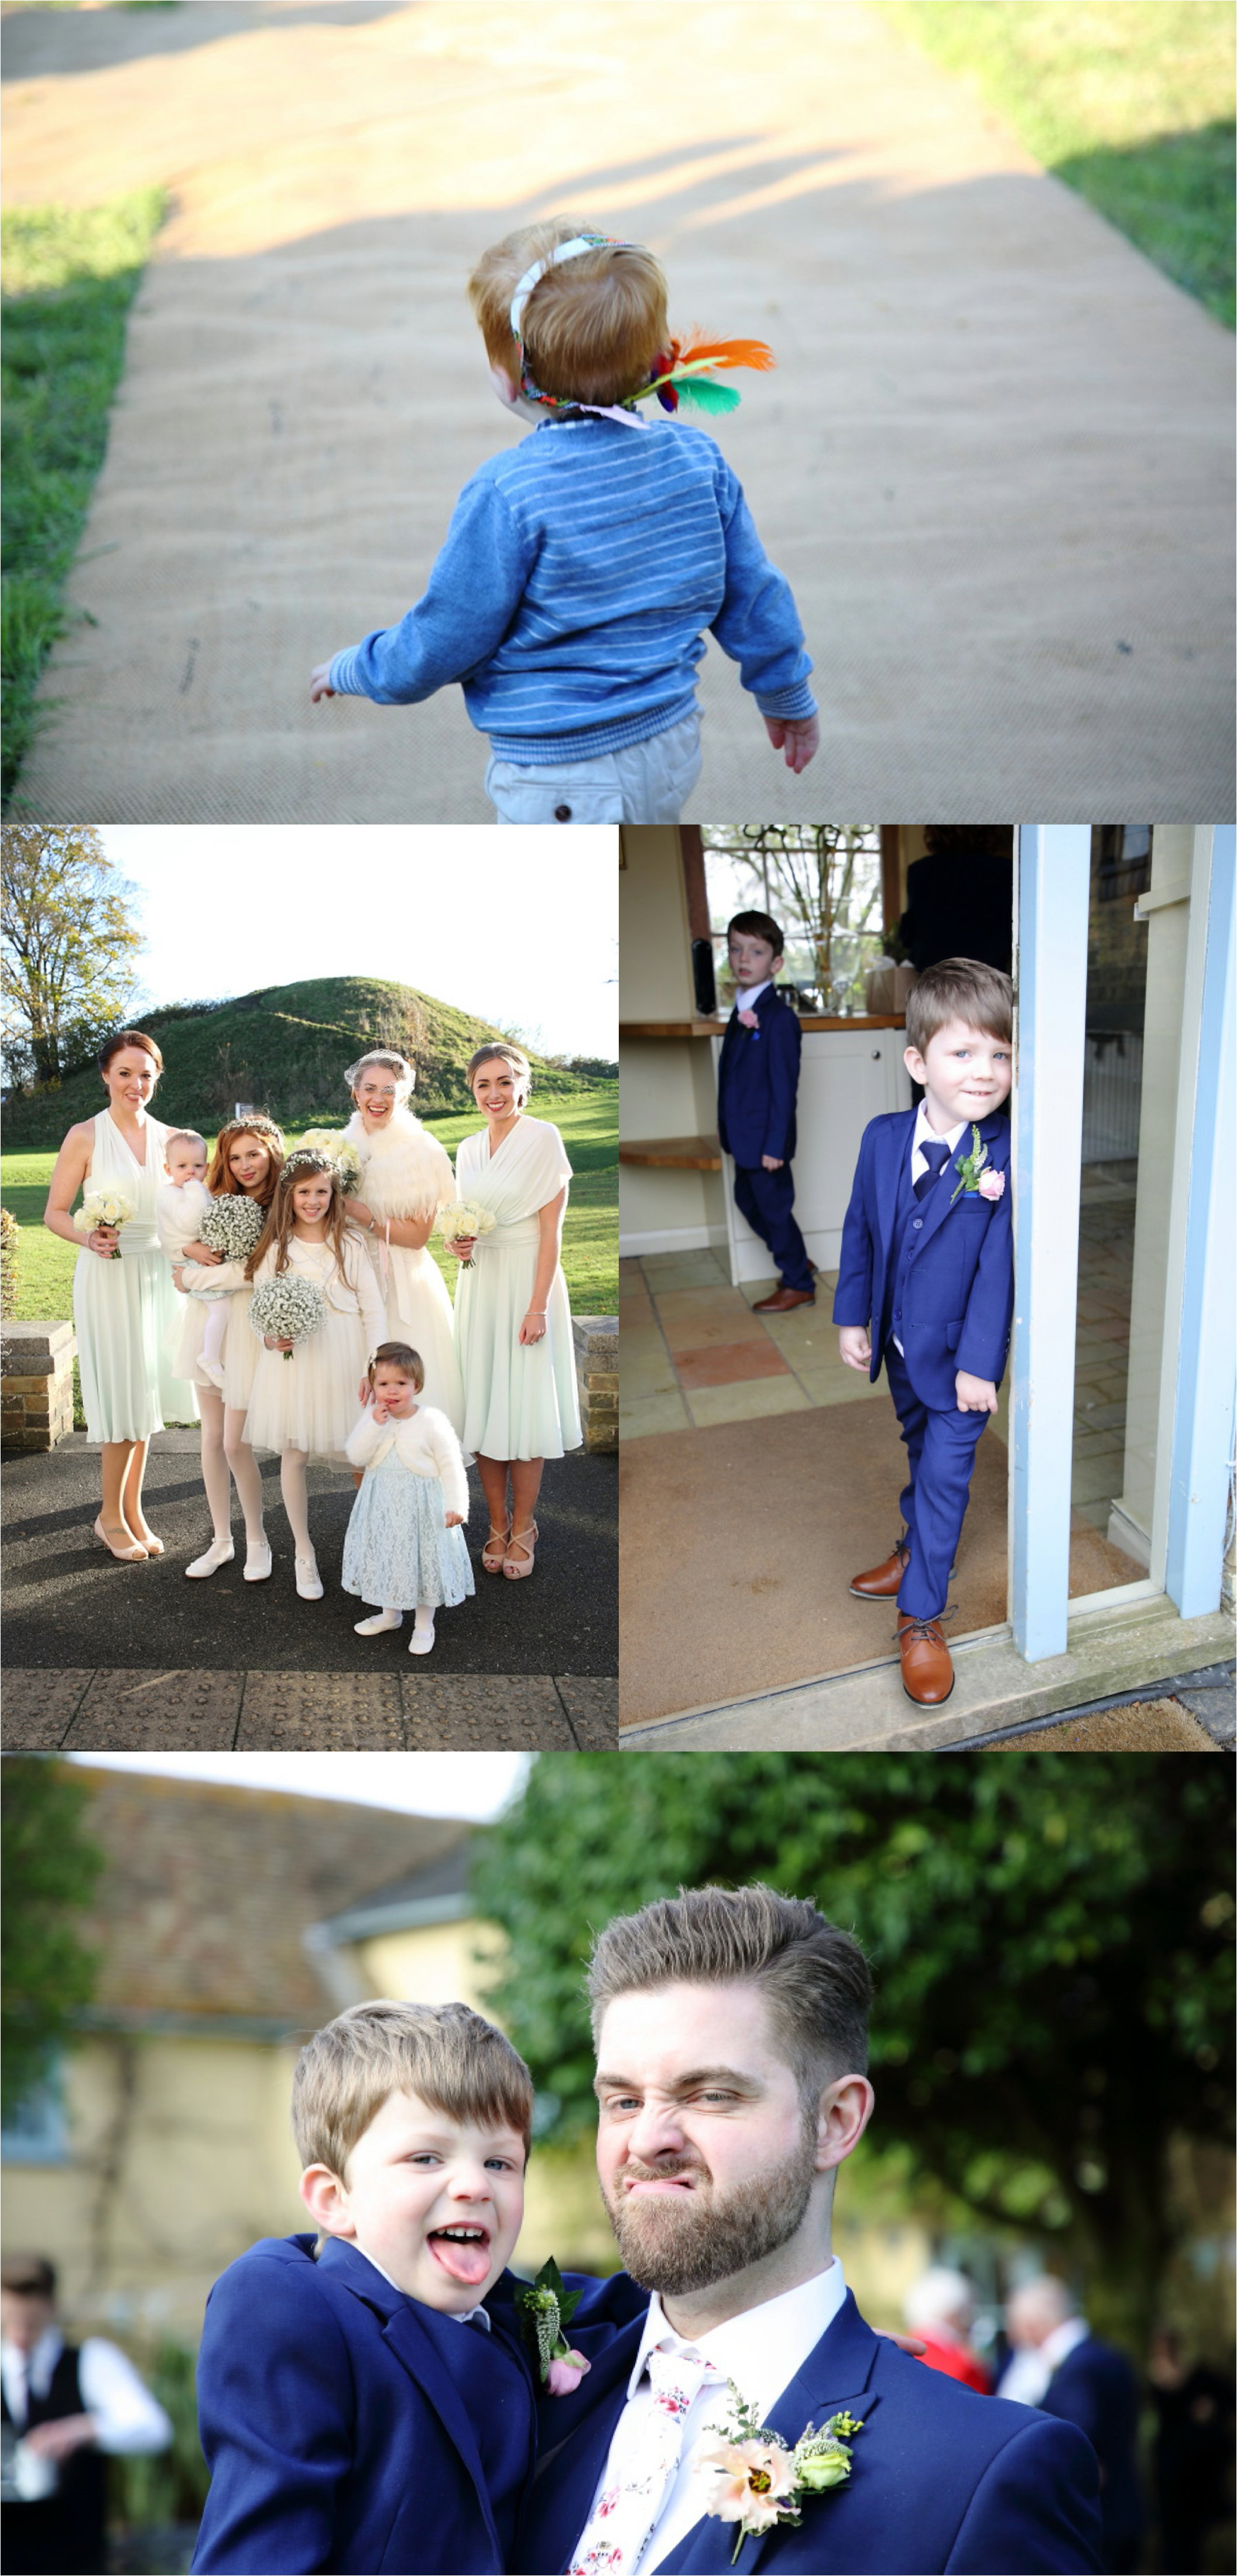 having children at your wedding, what to do and how to entertain them. Suffolk wedding photographer